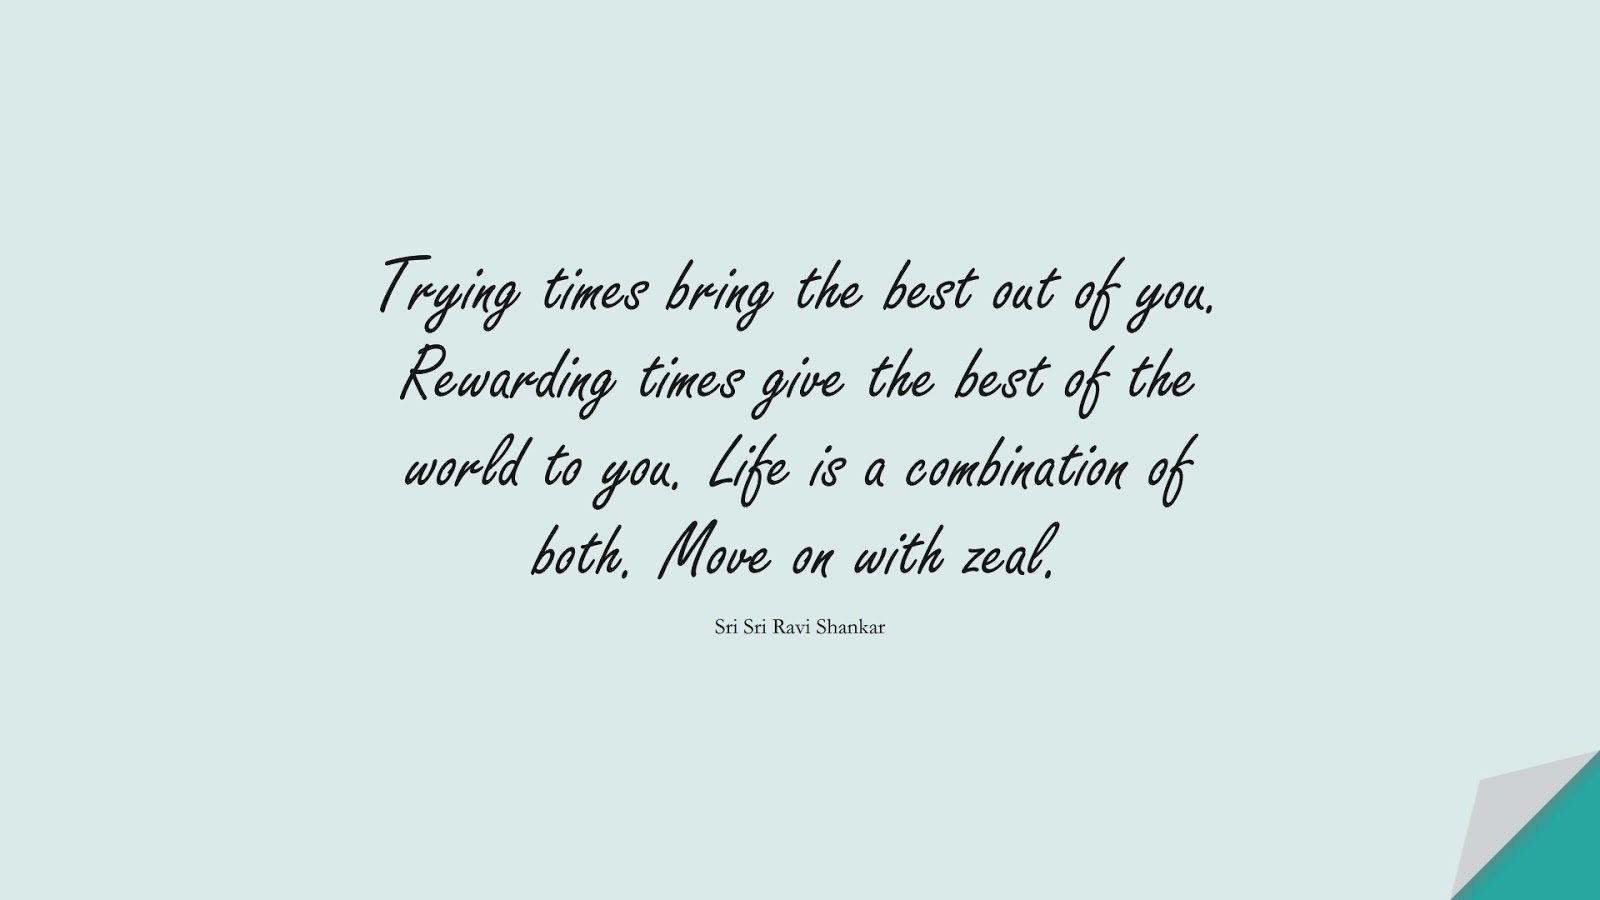 Trying times bring the best out of you. Rewarding times give the best of the world to you. Life is a combination of both. Move on with zeal. (Sri Sri Ravi Shankar);  #NeverGiveUpQuotes